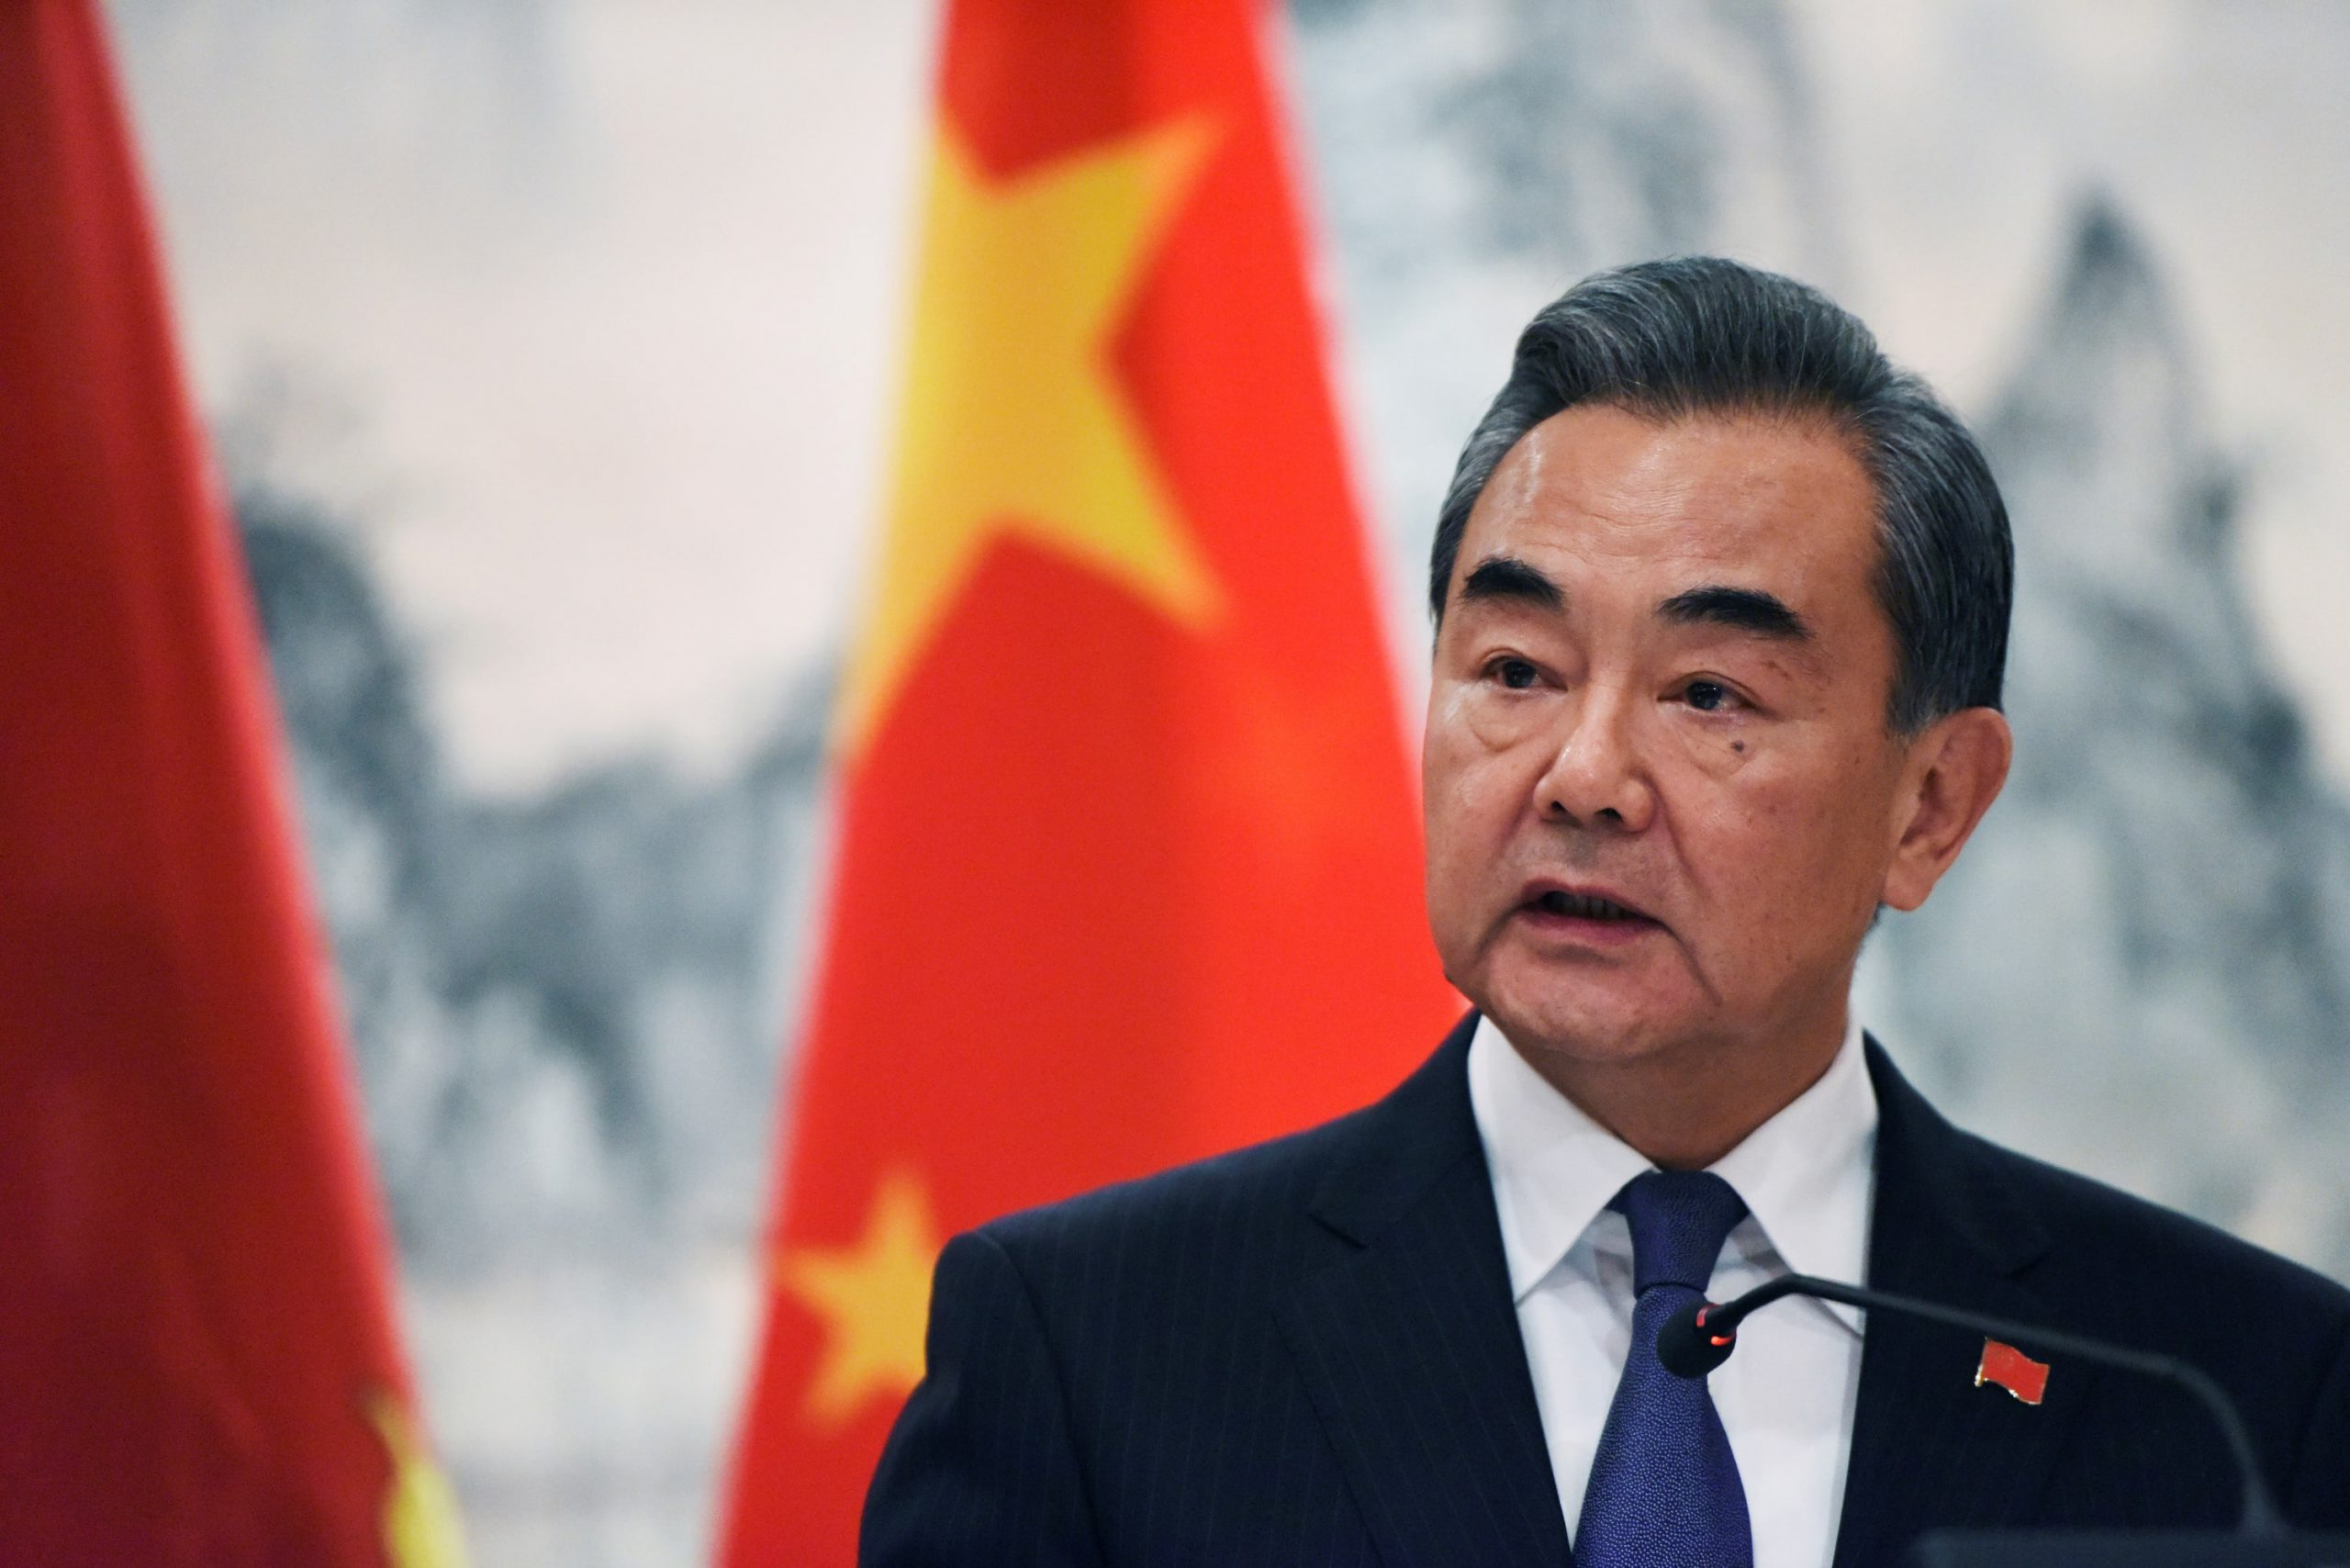 China's foreign minister says at symposium the US has successively angered and suppressed China